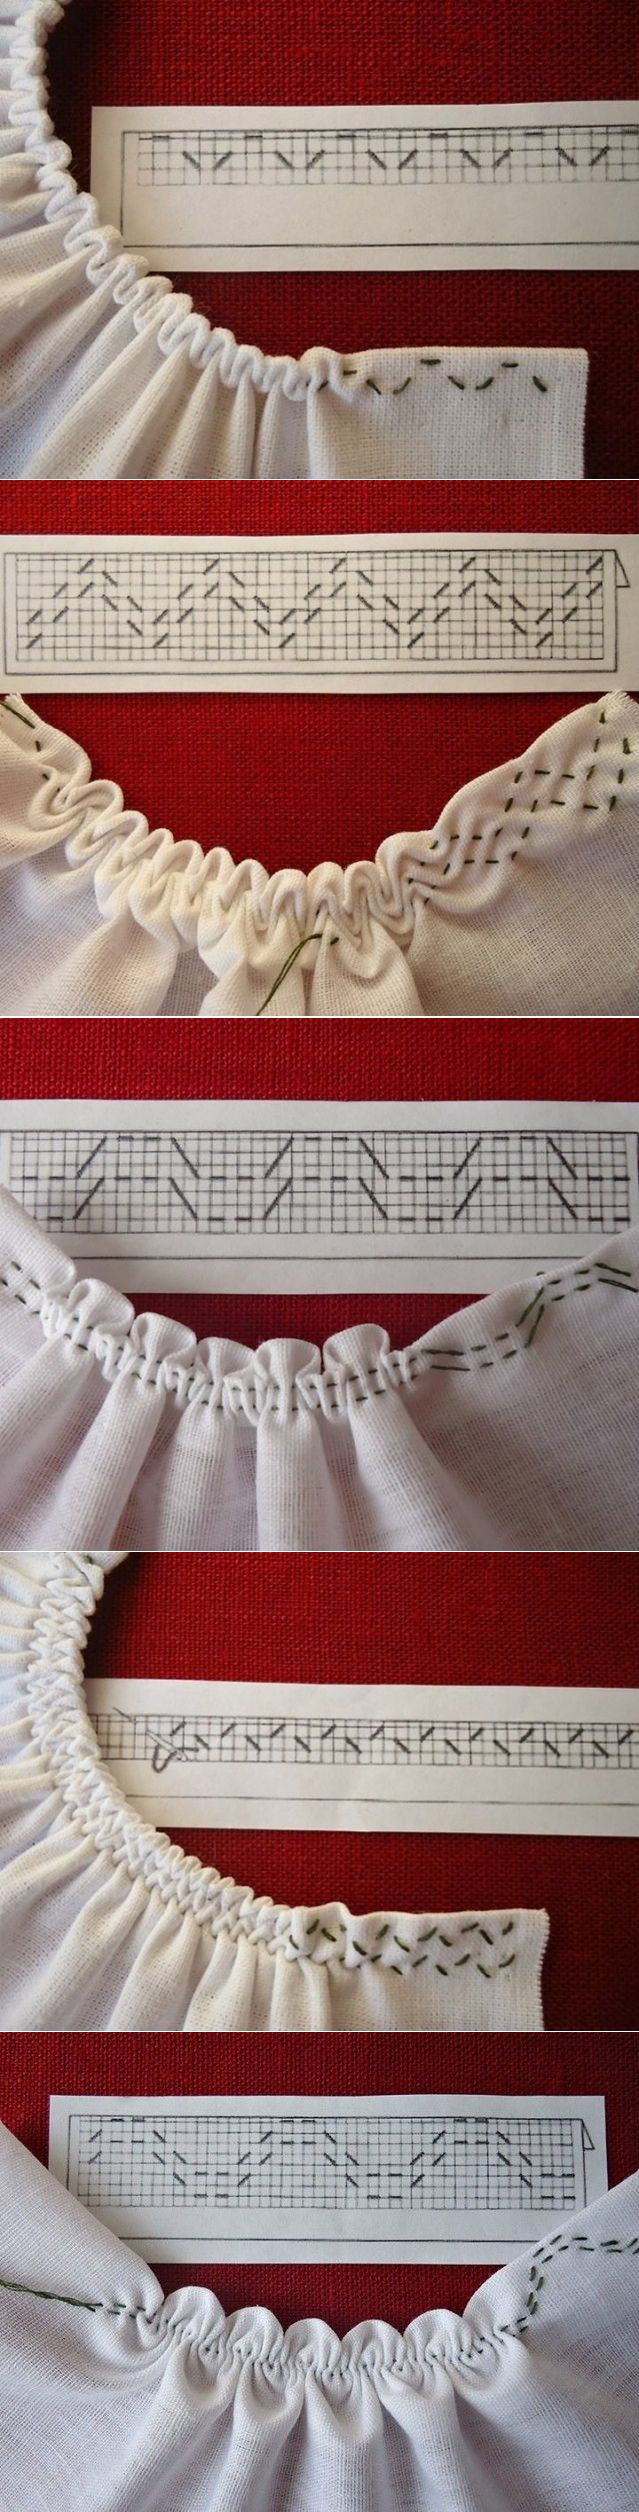 Smocking patterns